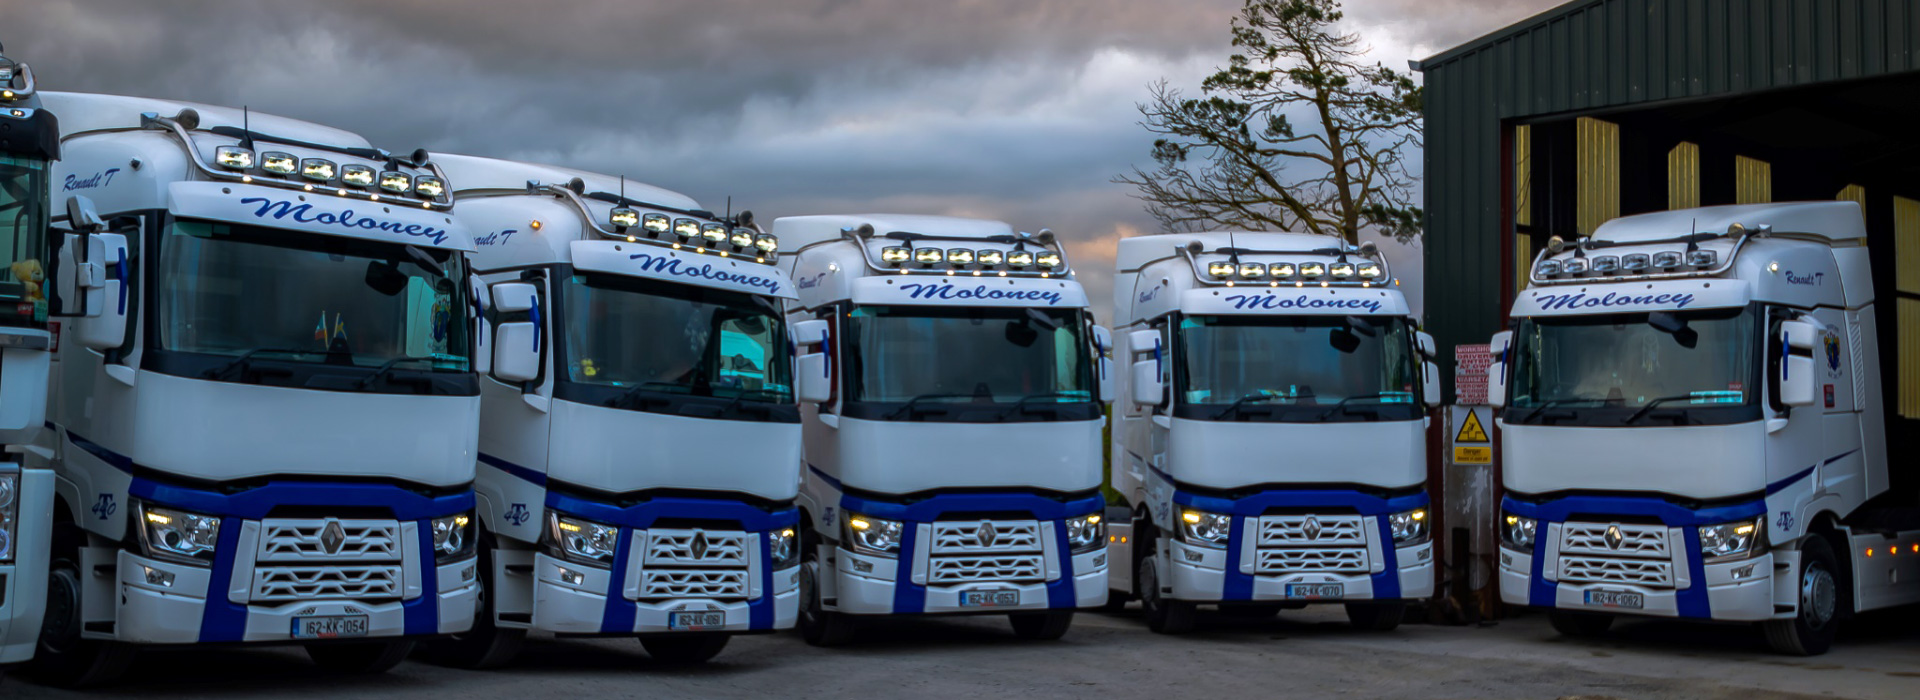 Barry Moloney Transport Services